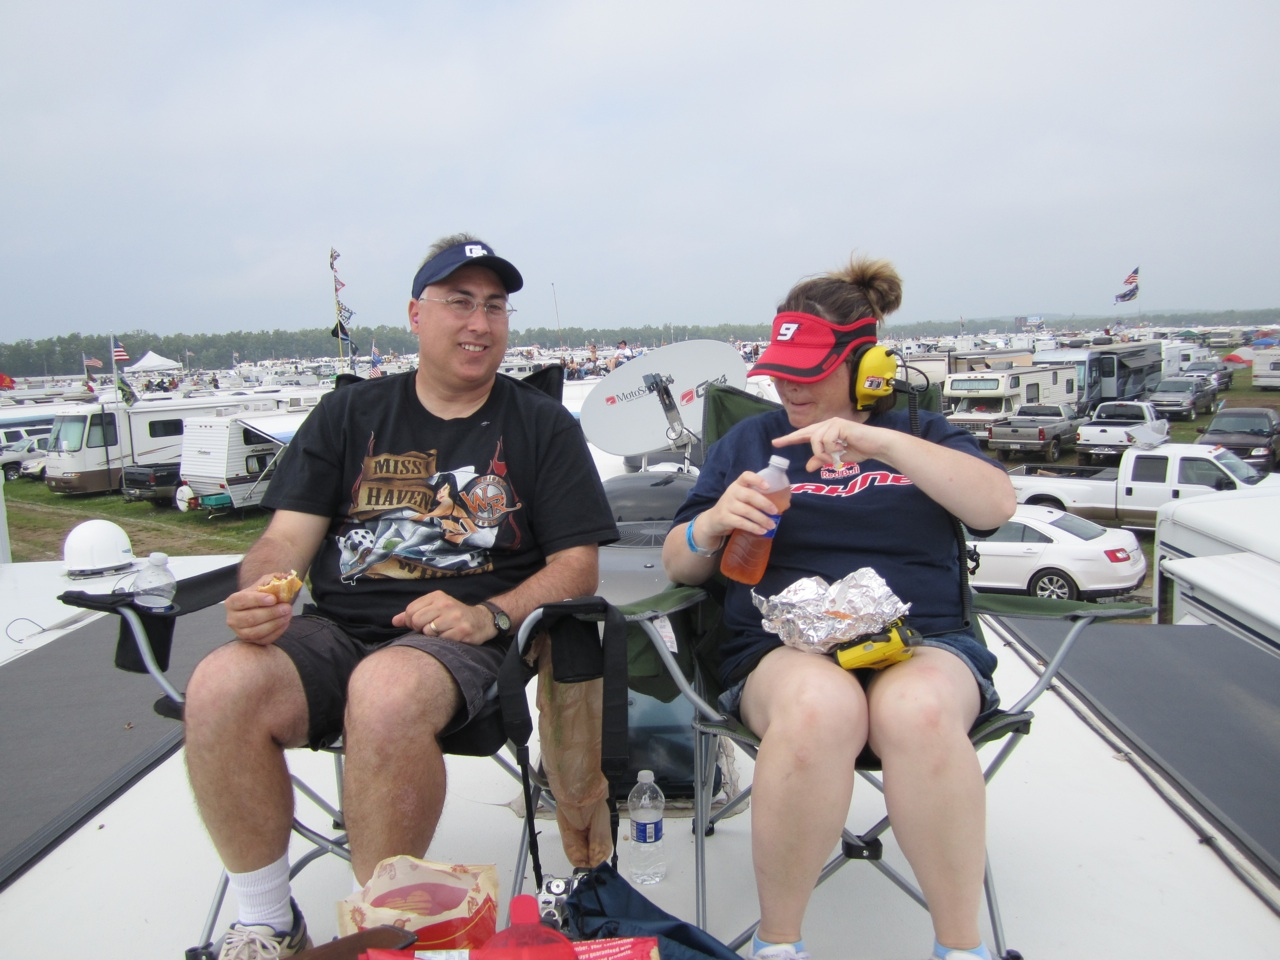 Joe And Lynn Having Lunch On The Roof While Watching The Race